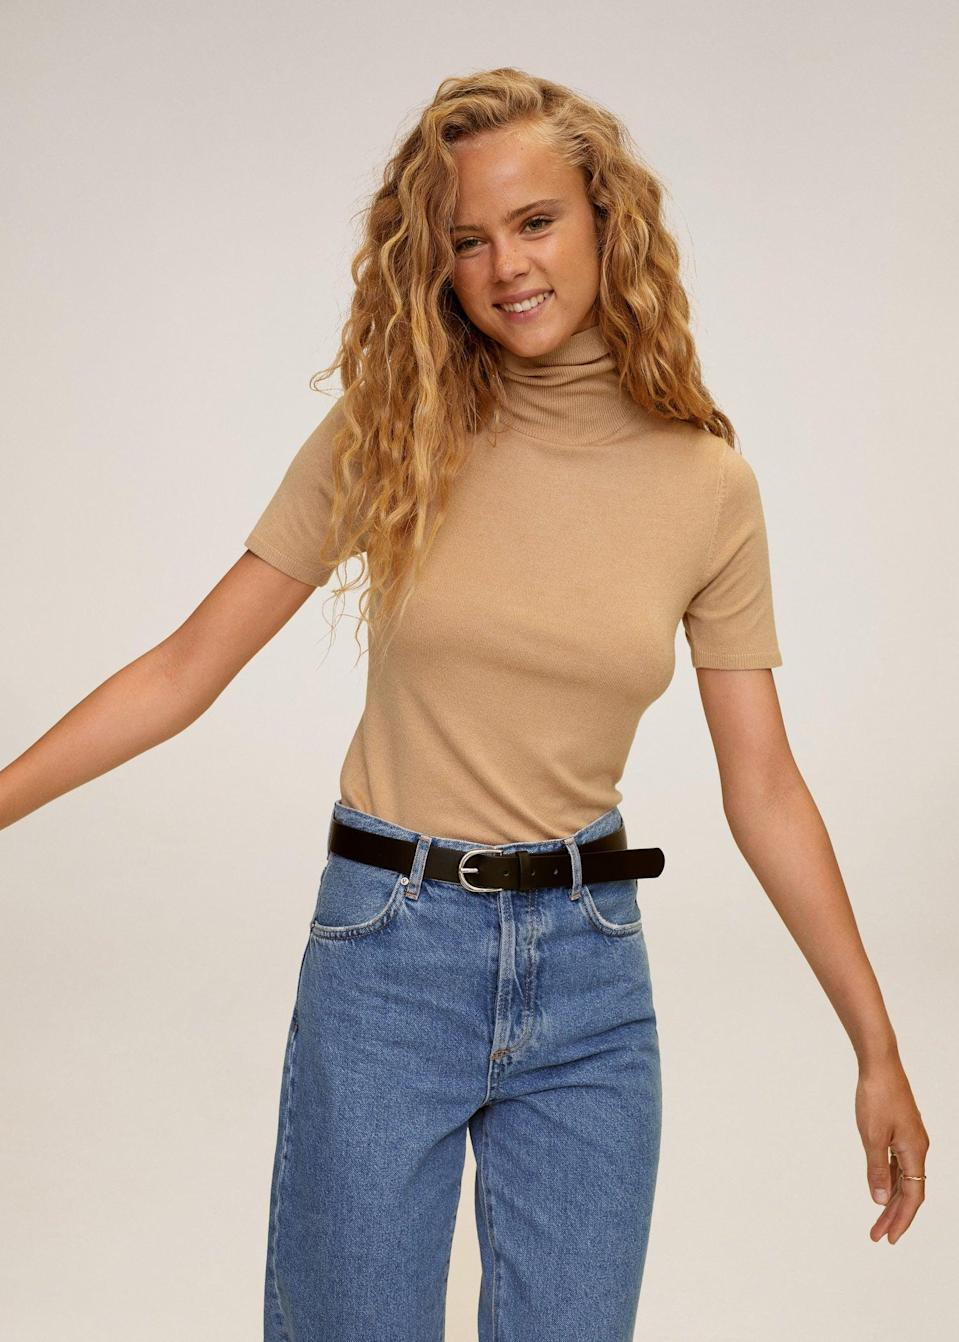 <p>This <span>Turtleneck sweater</span> ($30) makes a great layering piece for blazers, sweater vests or oversized cardigans.</p>